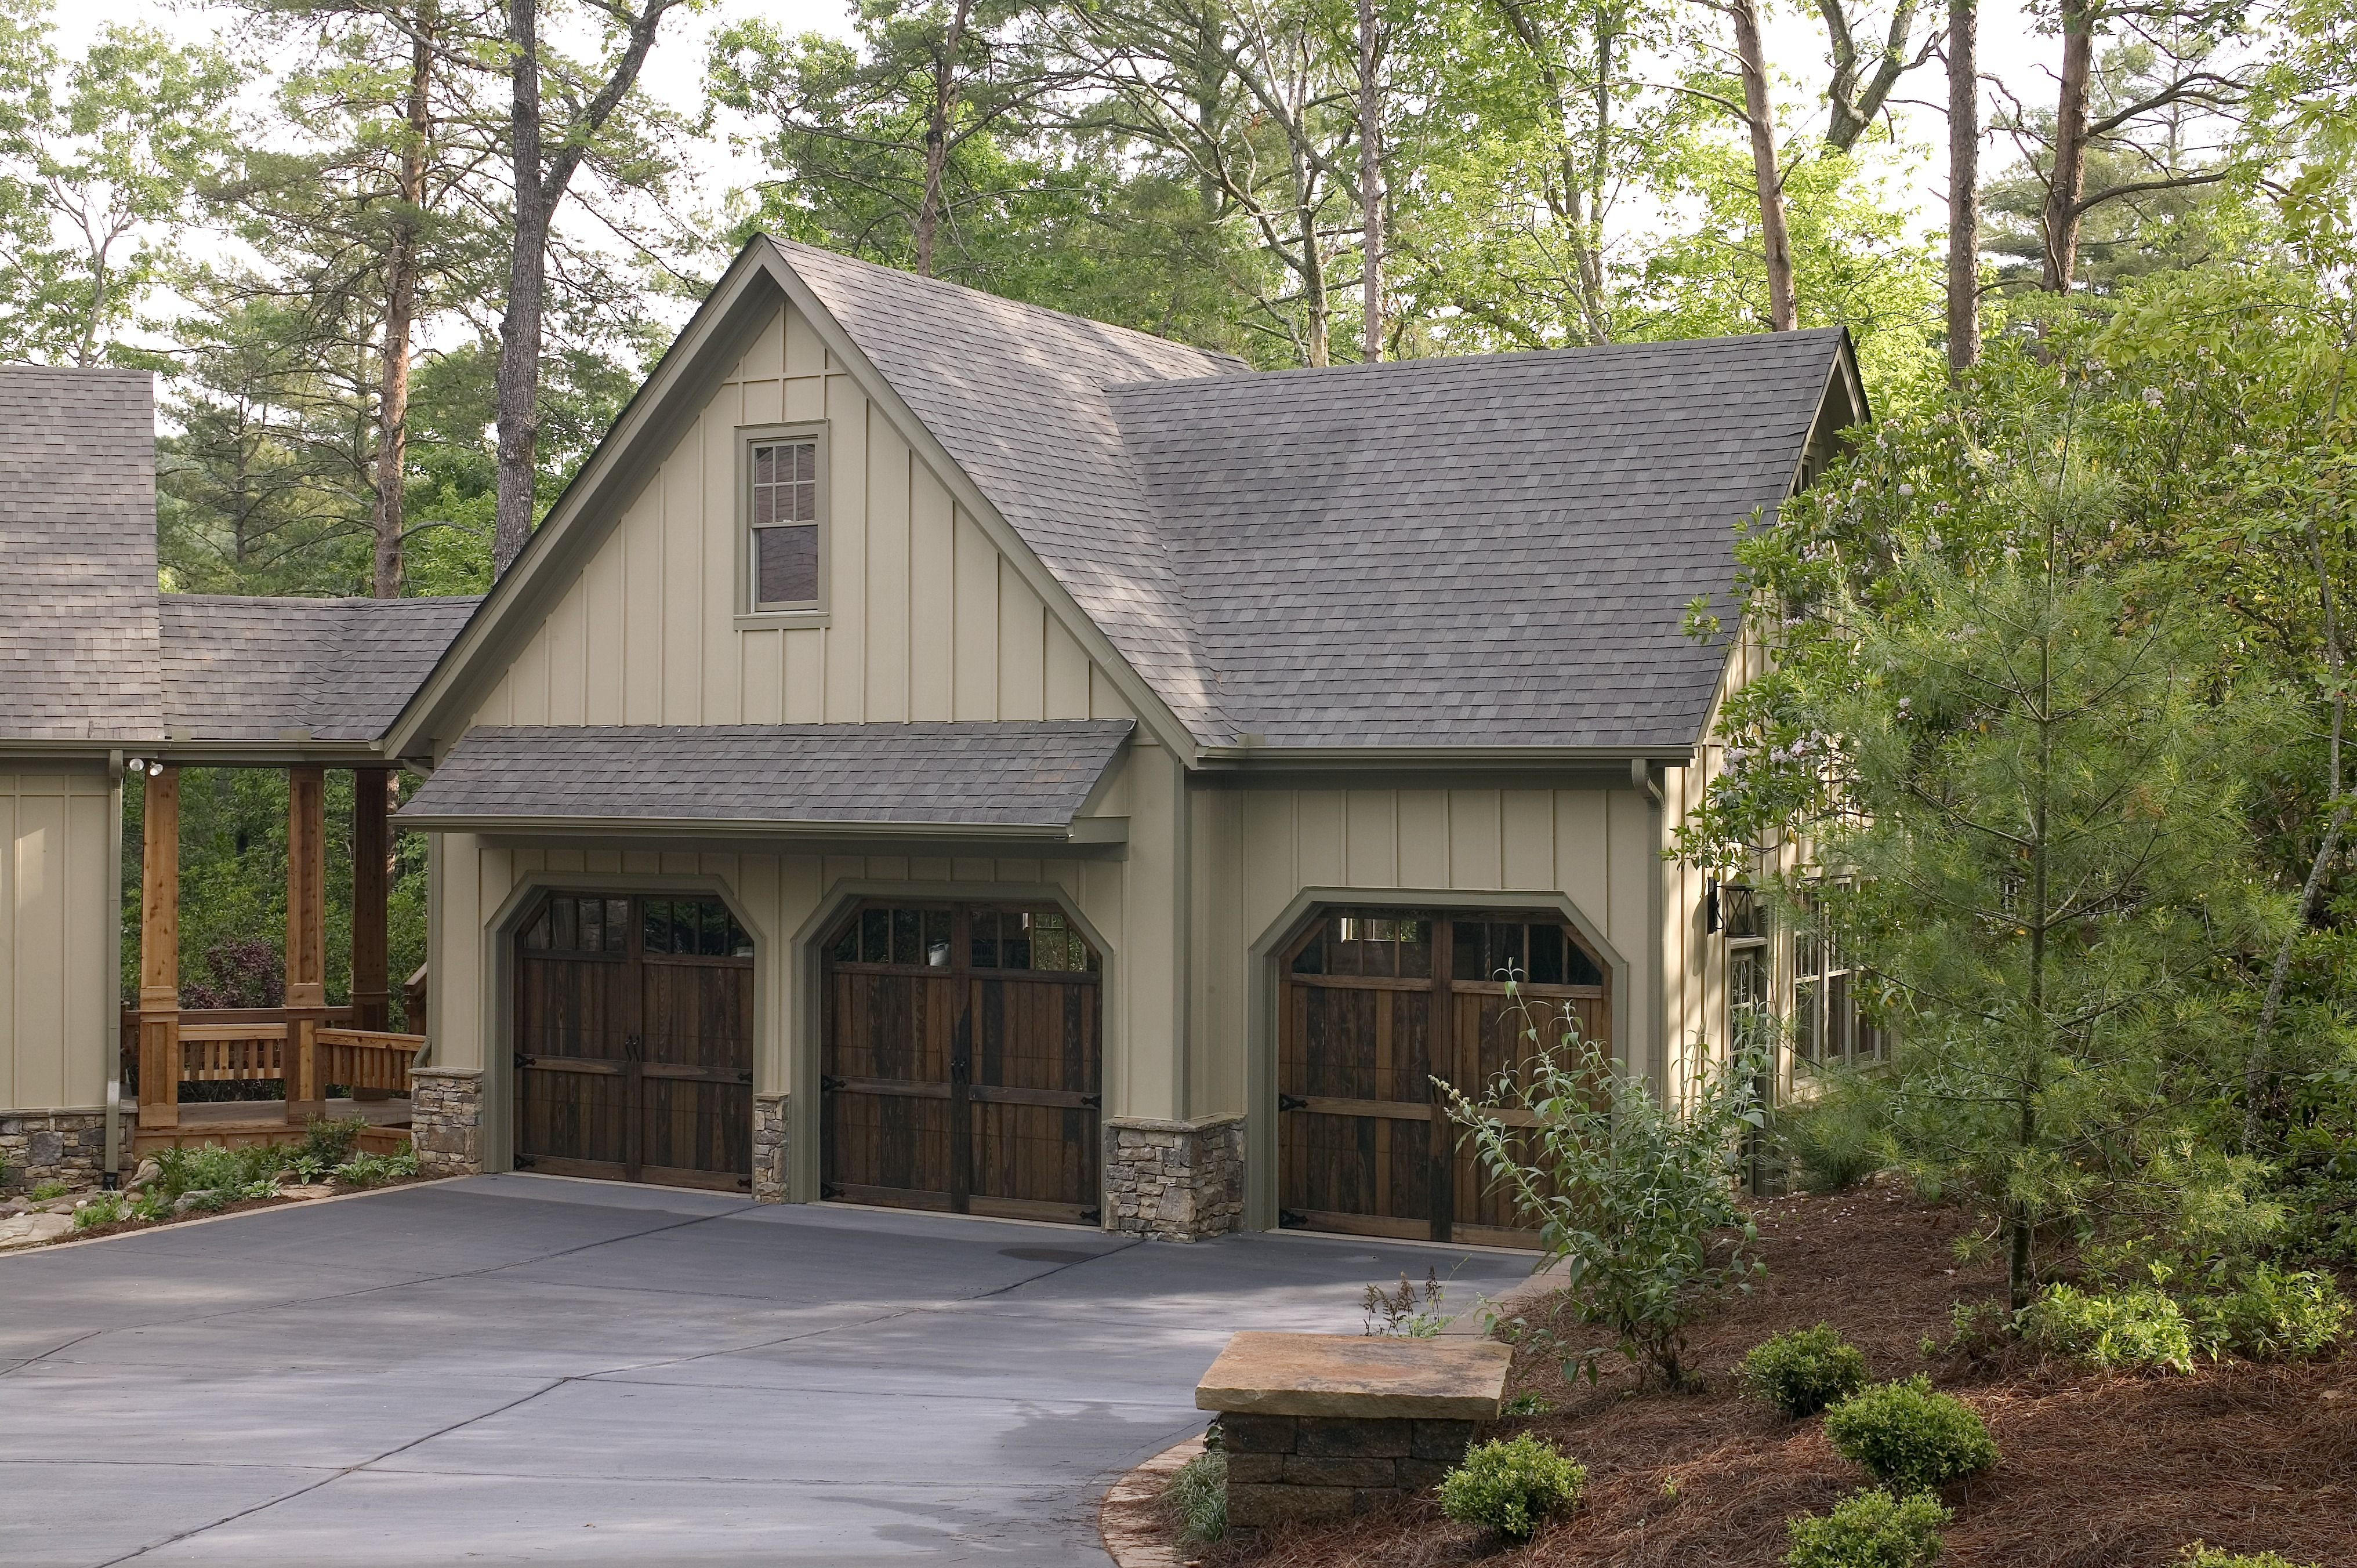 A Warm And Inviting Cape Cod Style Home With Green Siding And Beautiful Wood Garage Doors Click To See How With Images Detached Garage Cost Garage Remodel Attached Garage